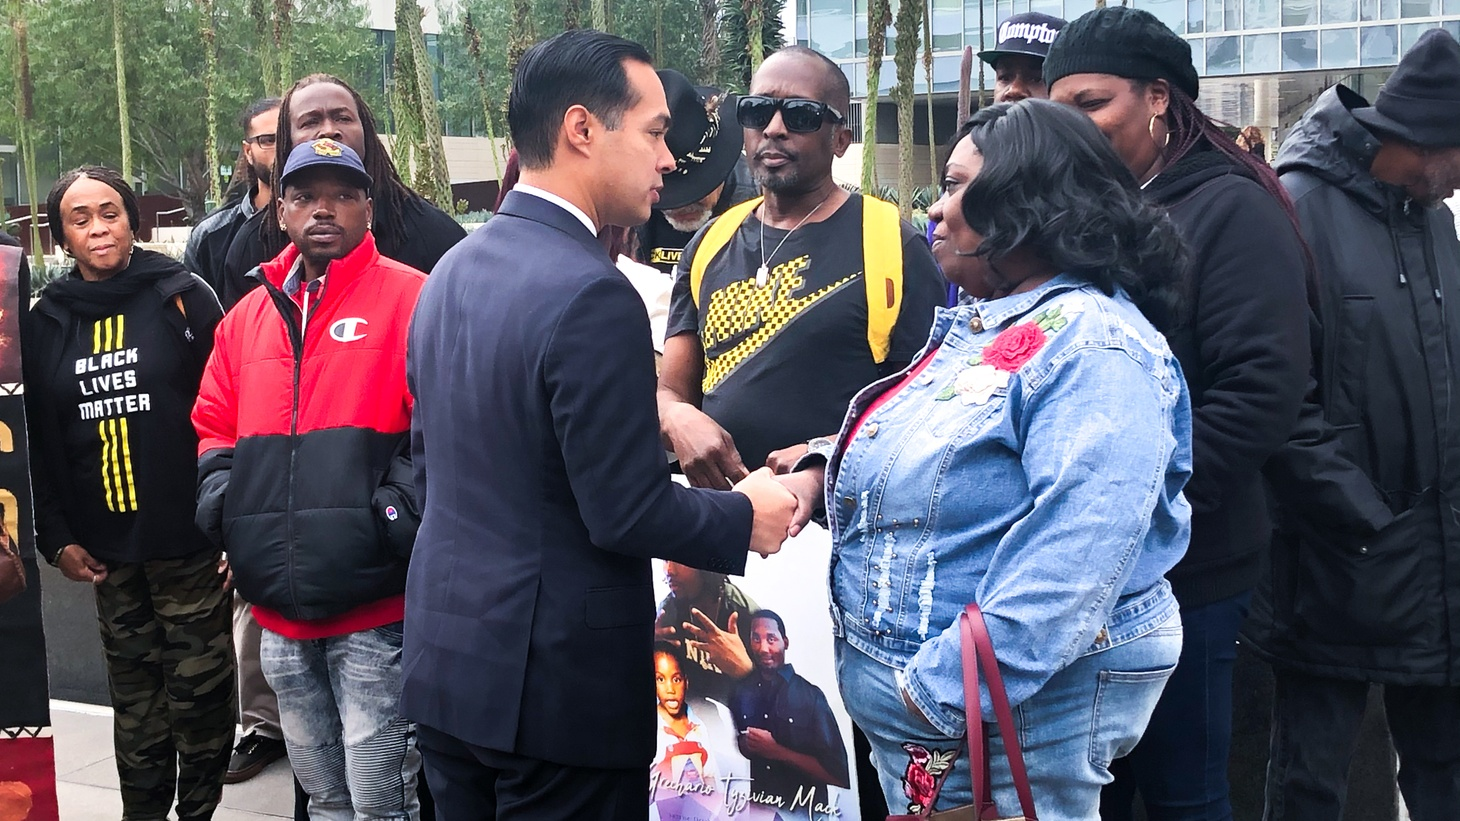 Julian Castro joined Black Lives Matter co-founder Melina Abdullah and others in calling for two LAPD officers to be fired in the police shooting of Grechario Mack, 30.